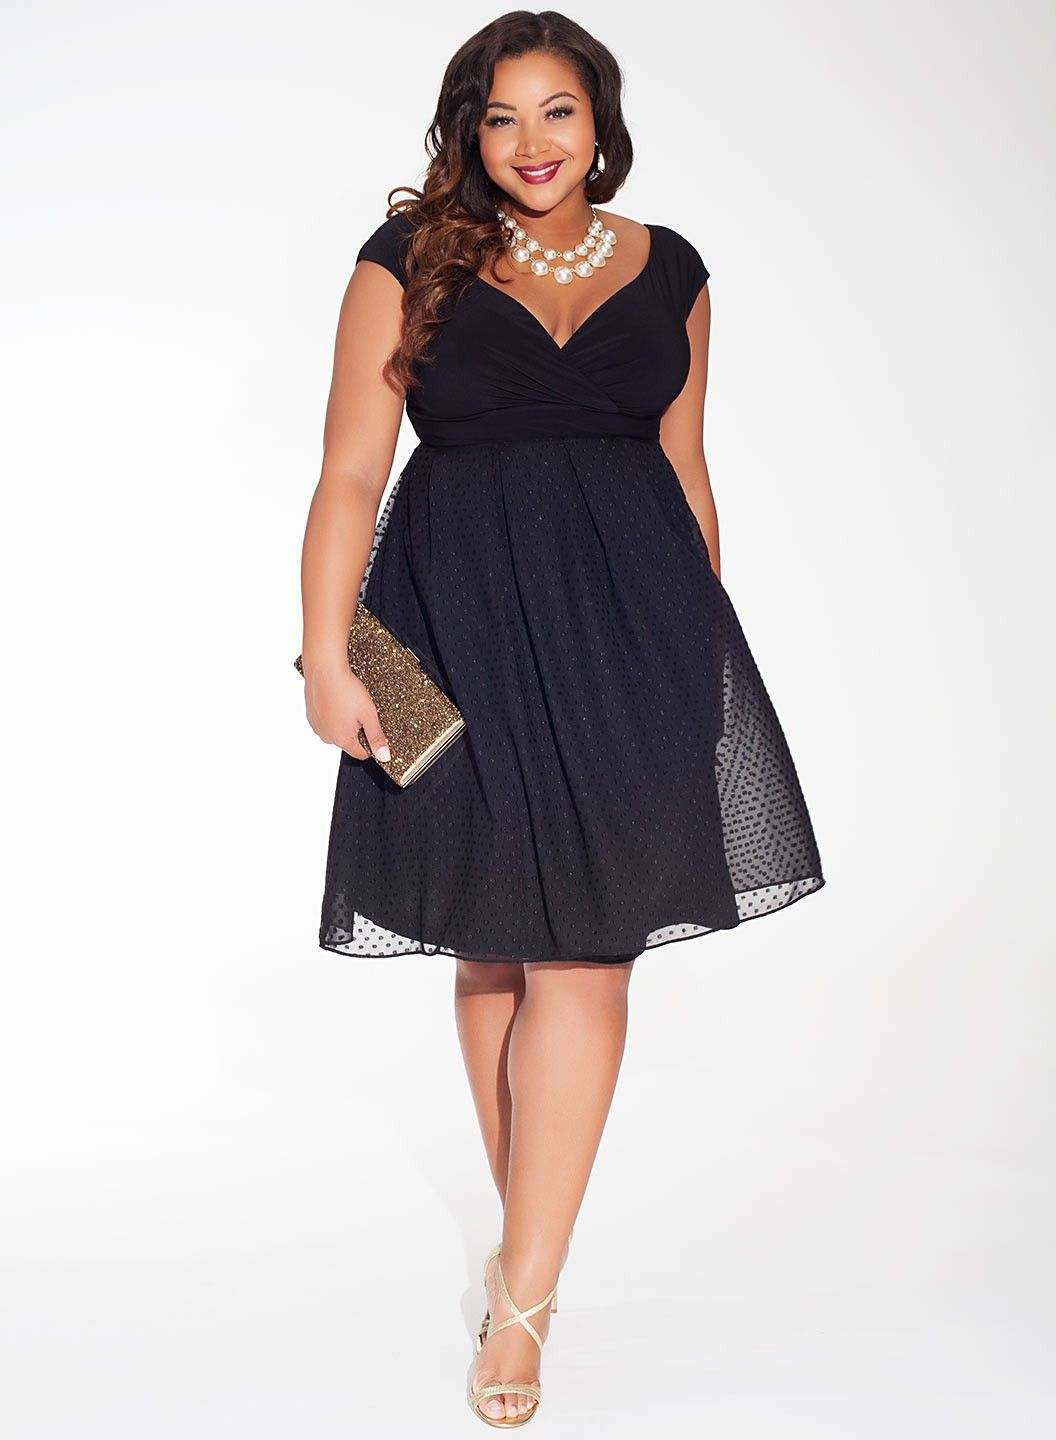 Adelle Dress | Plus size dresses, Overlays and Skirts